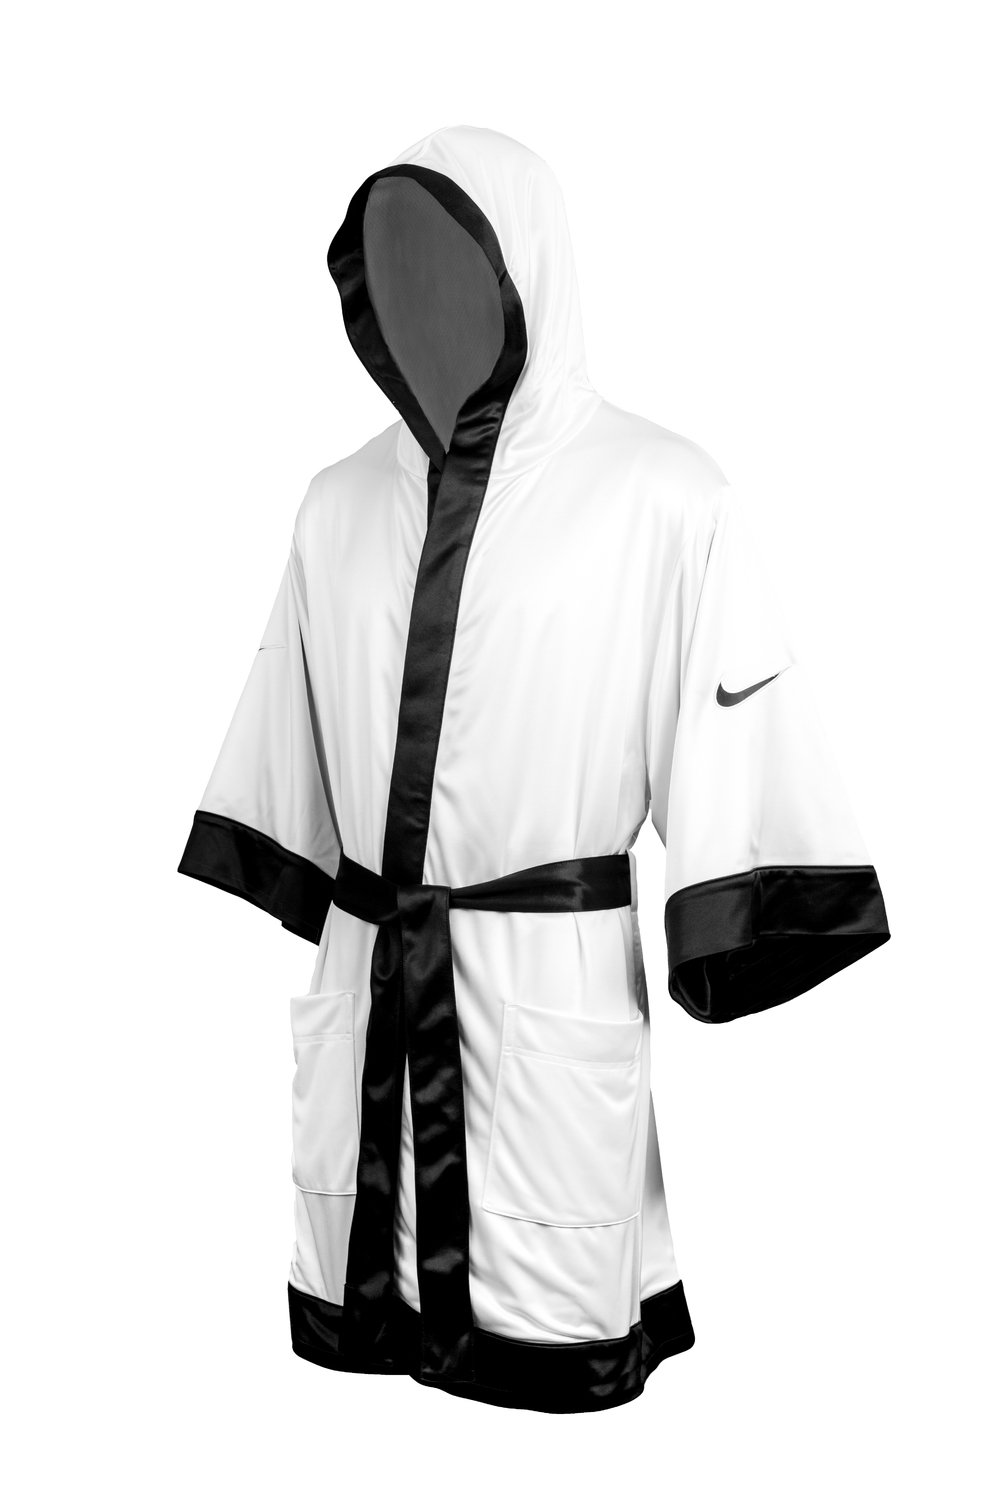 56db195b8603e0 Nike Boxing Jacket white black - Kickboxing and boxing clothing ...